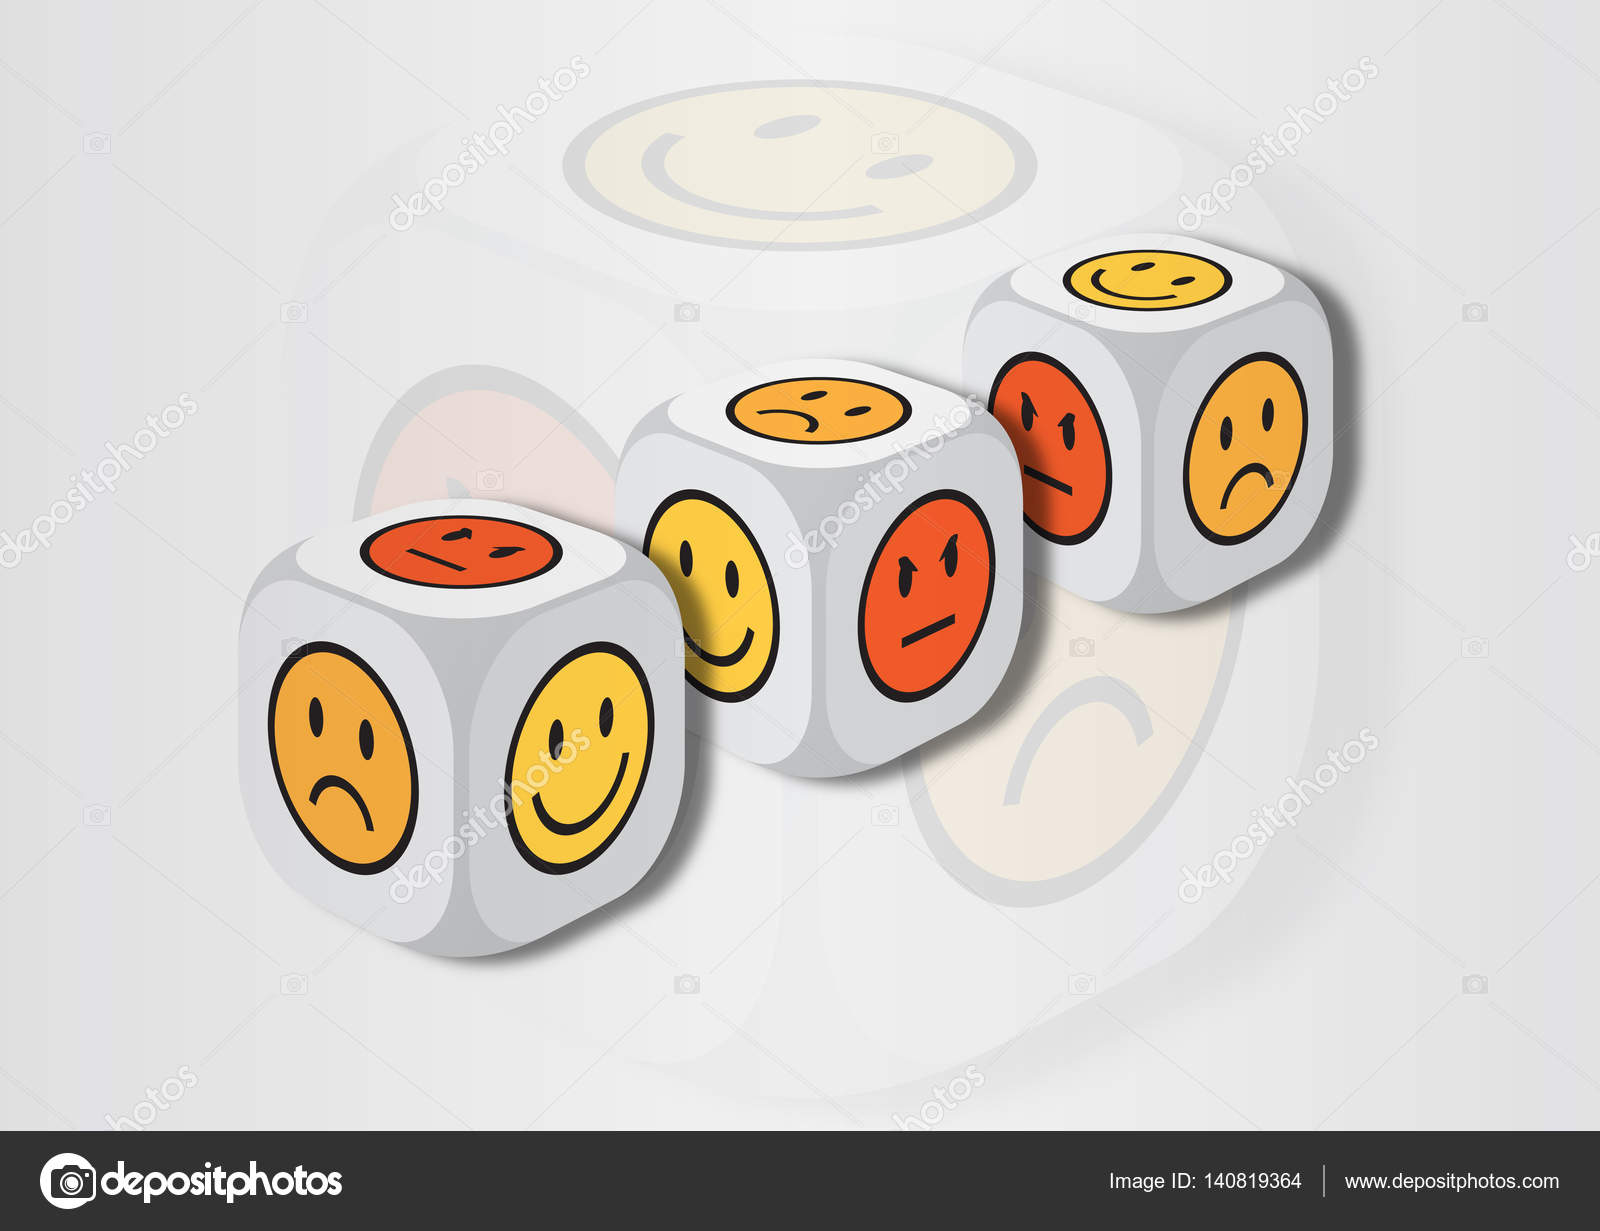 A 3d Illustration Of Three Dice With Emotion Symbols Stock